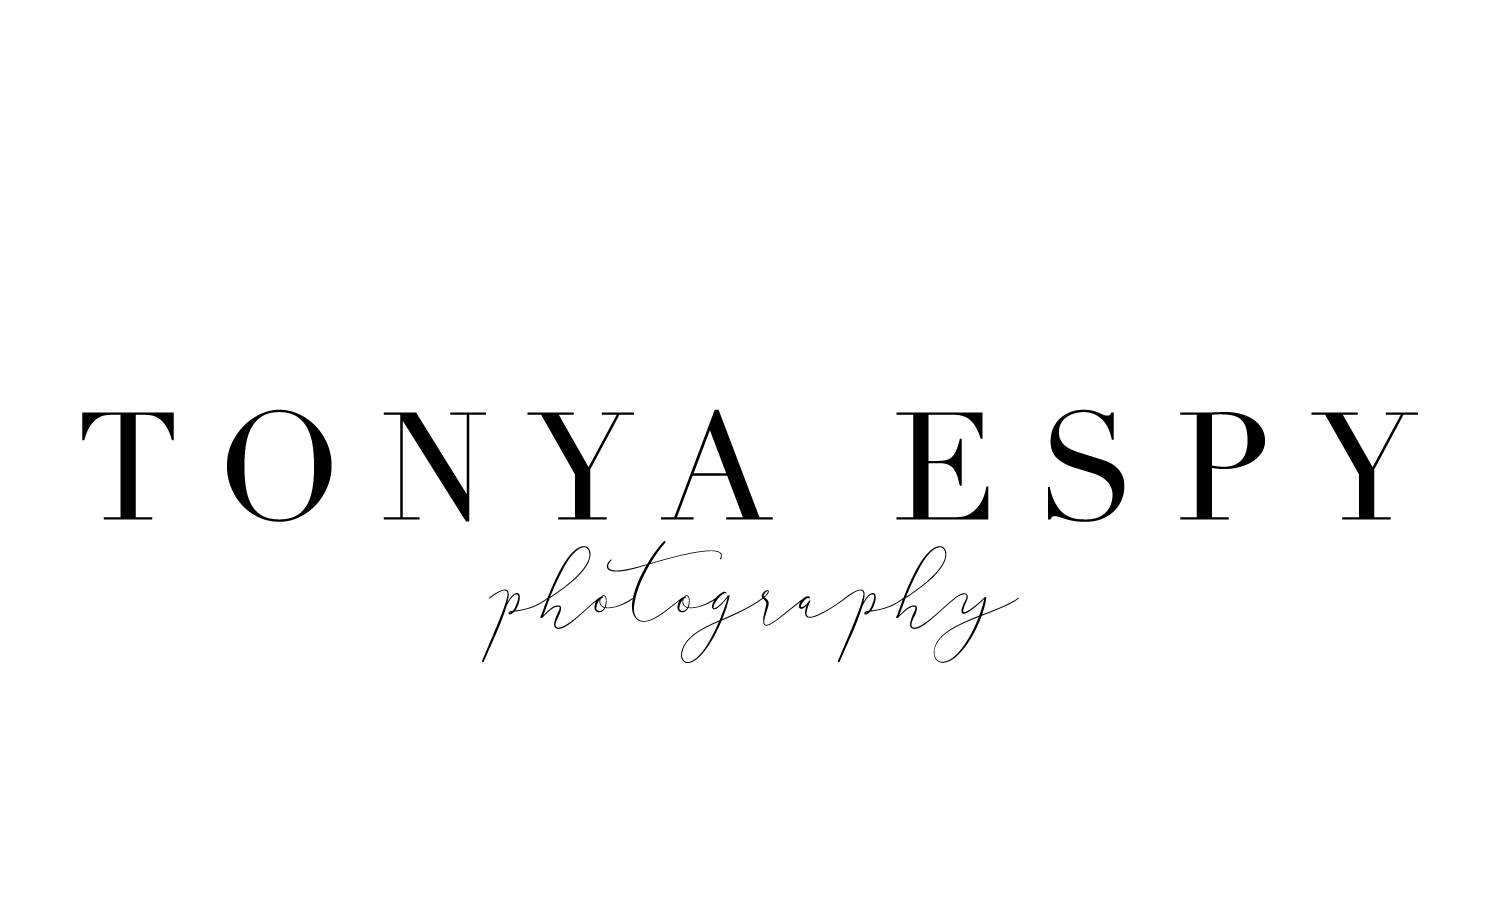 Tonya Espy Photography | Modern & Romantic Film Photographer | Boudoir. Lifestyle. Weddings. | Dayton. Cincinnati.